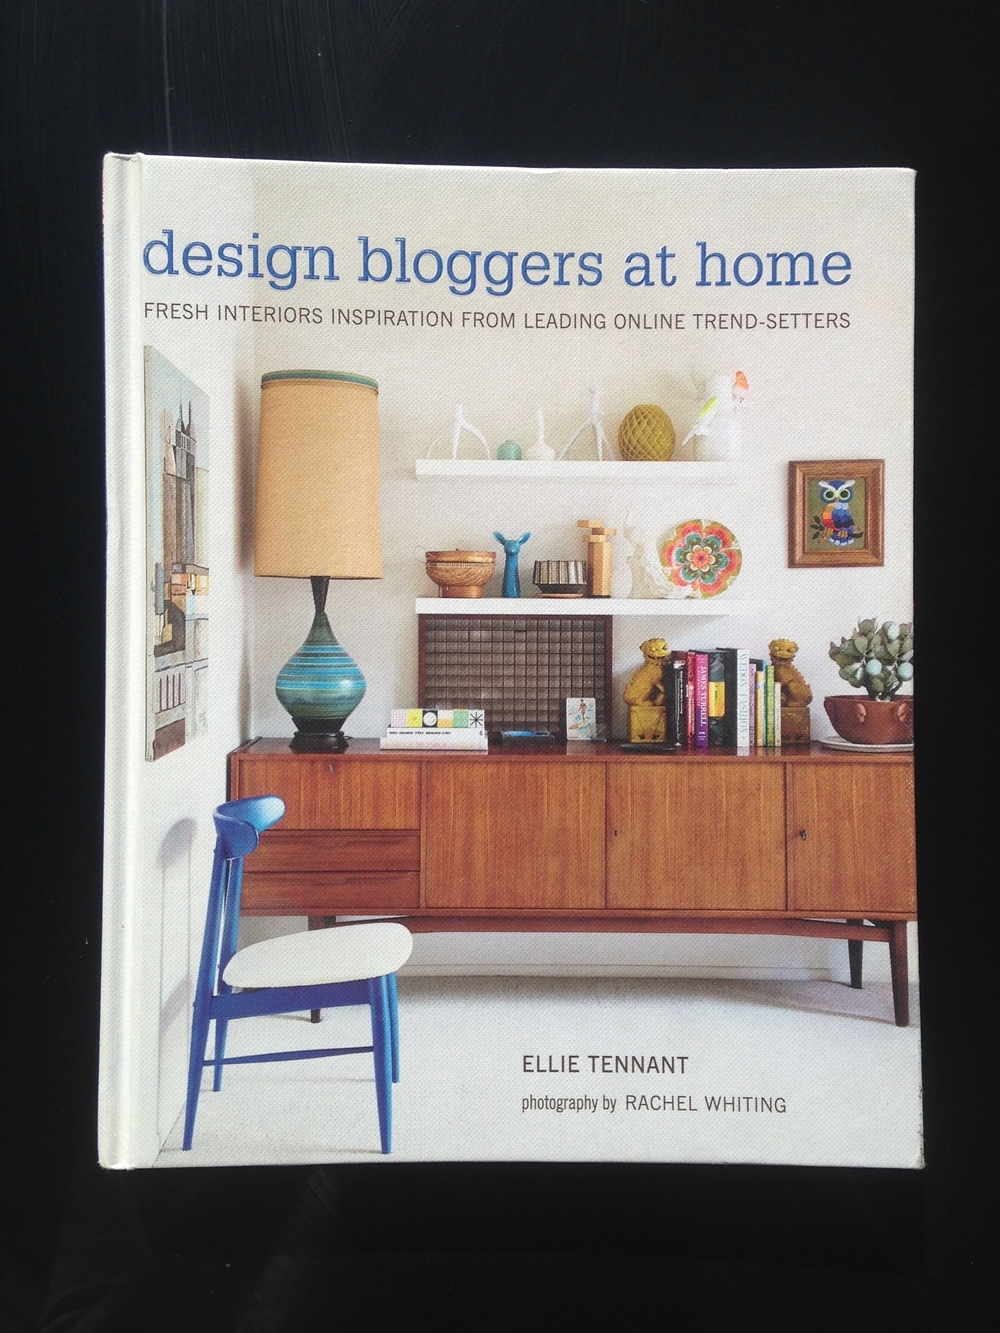 design bloggers at home book